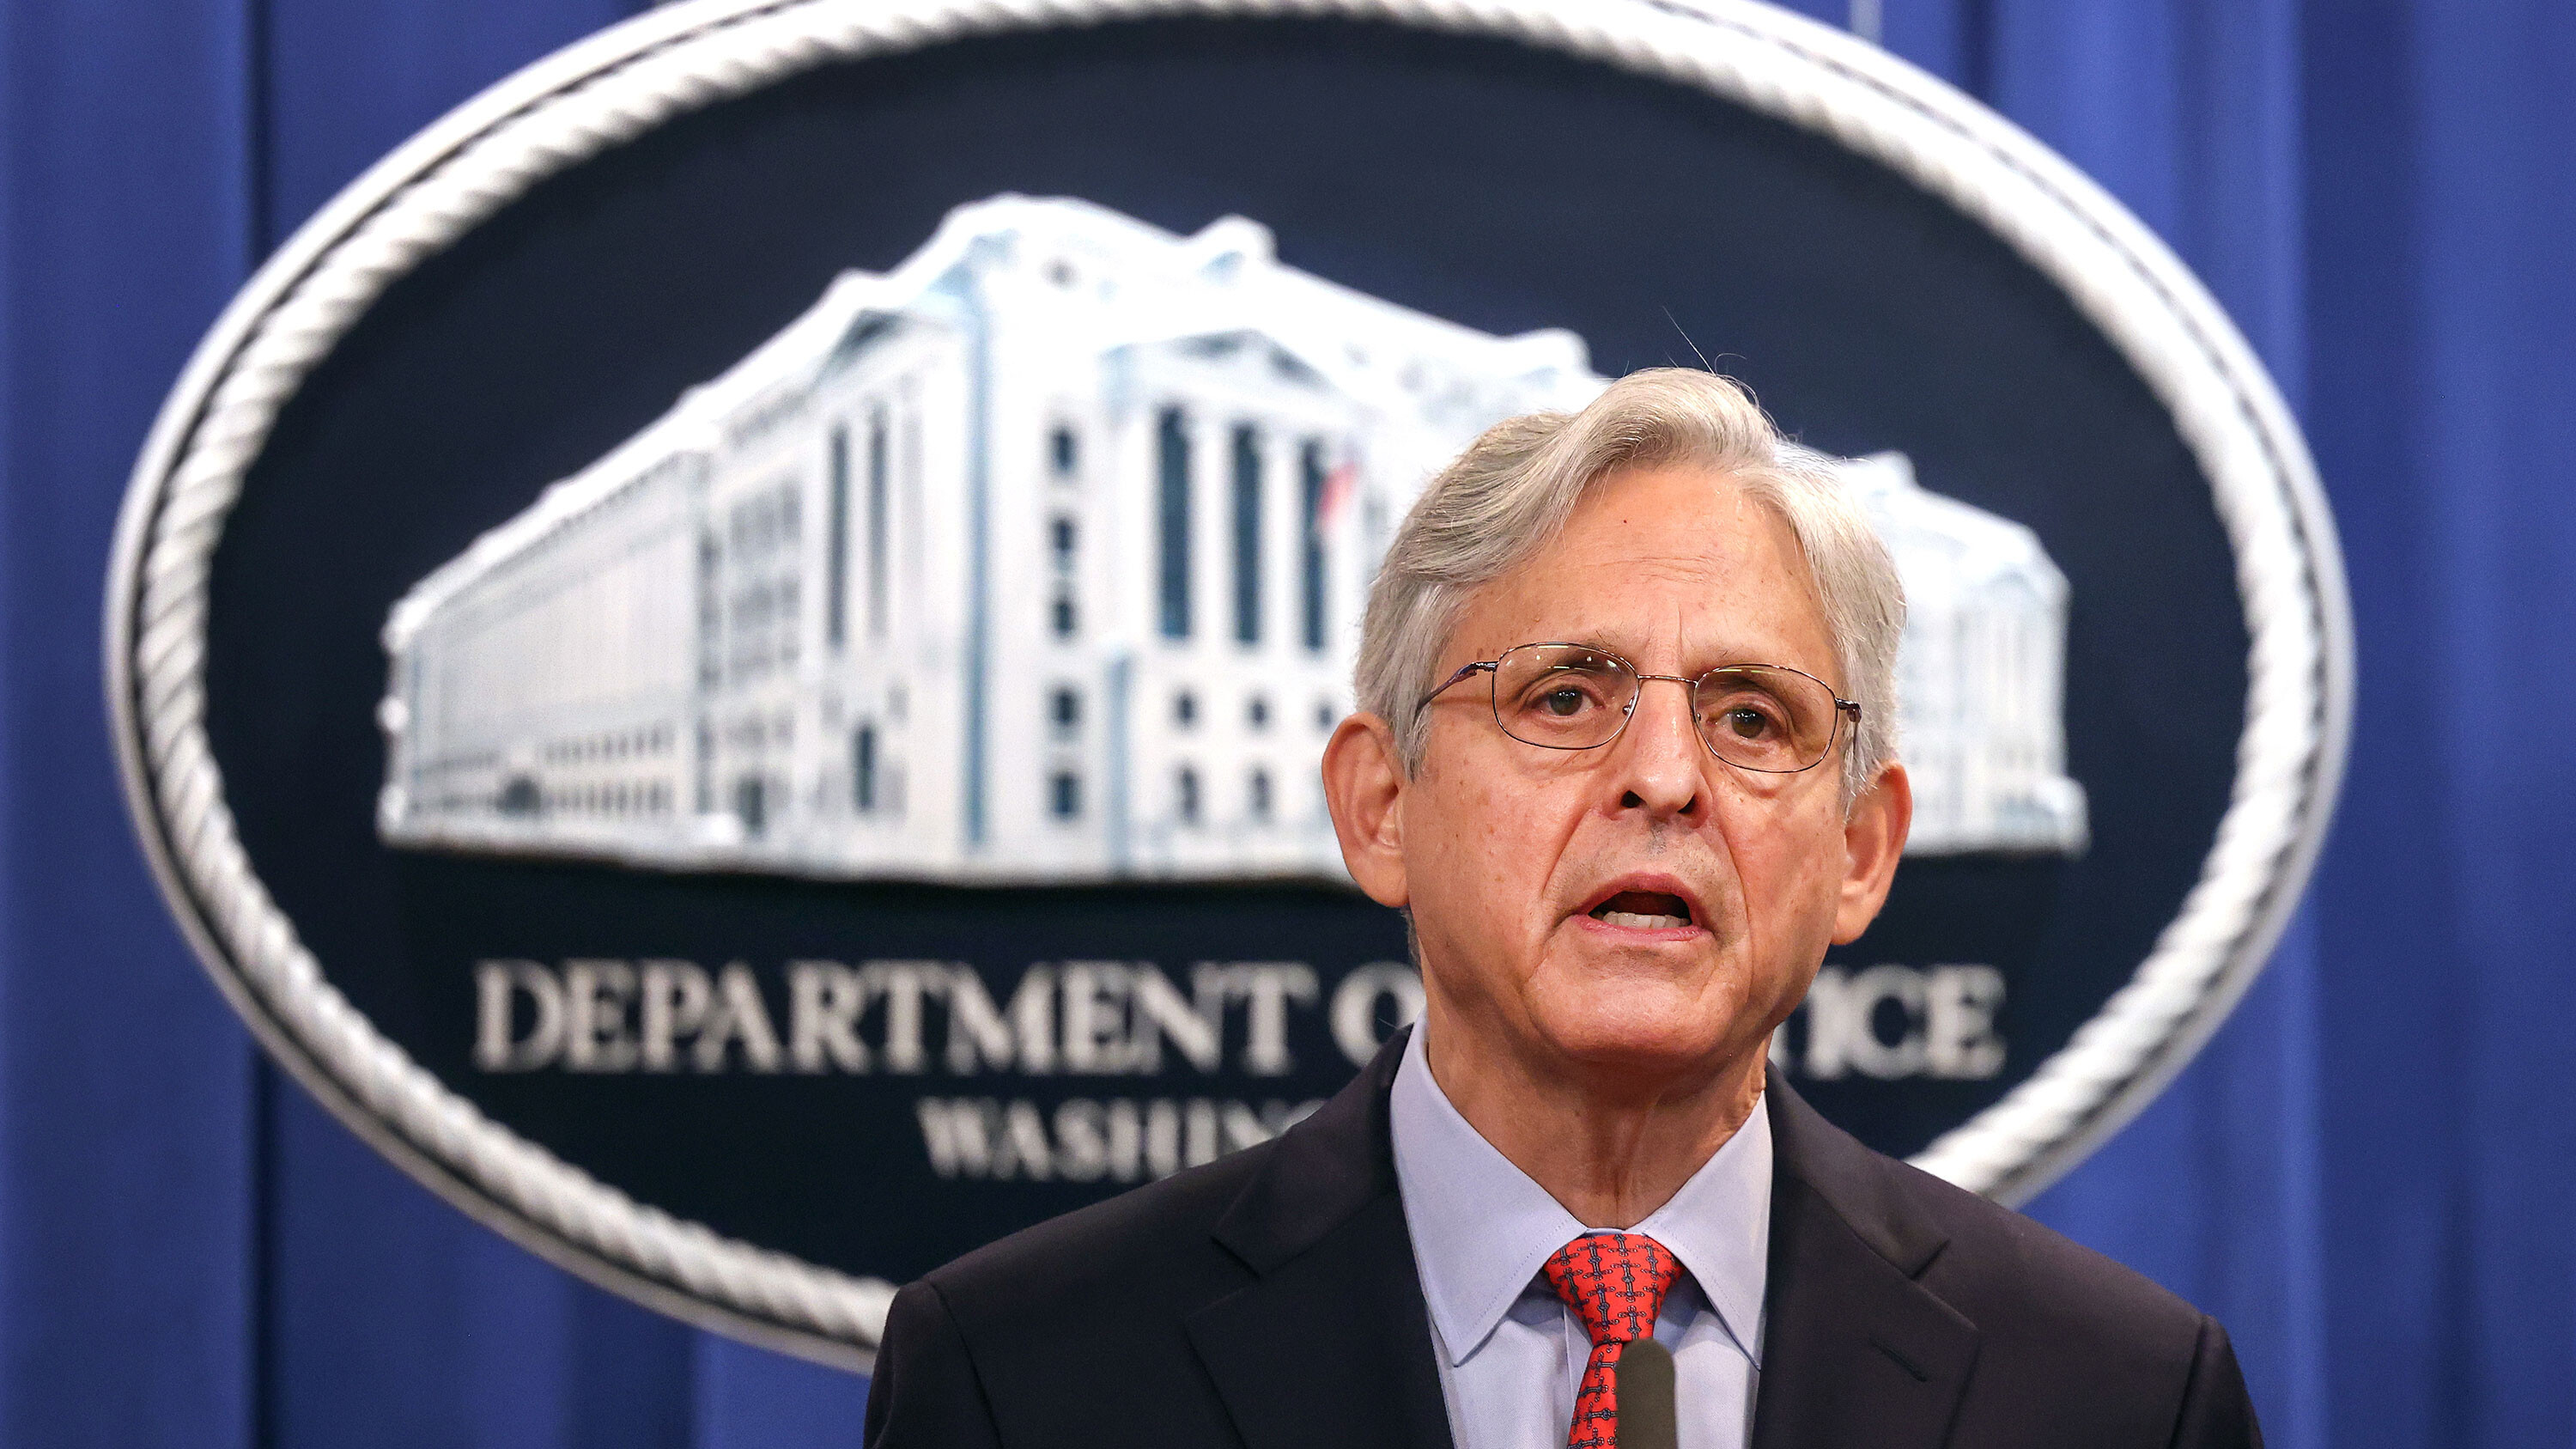 Merrick Garland testifies in House with US Capitol riots, abortion, vaccine and voting-rights fights ongoing